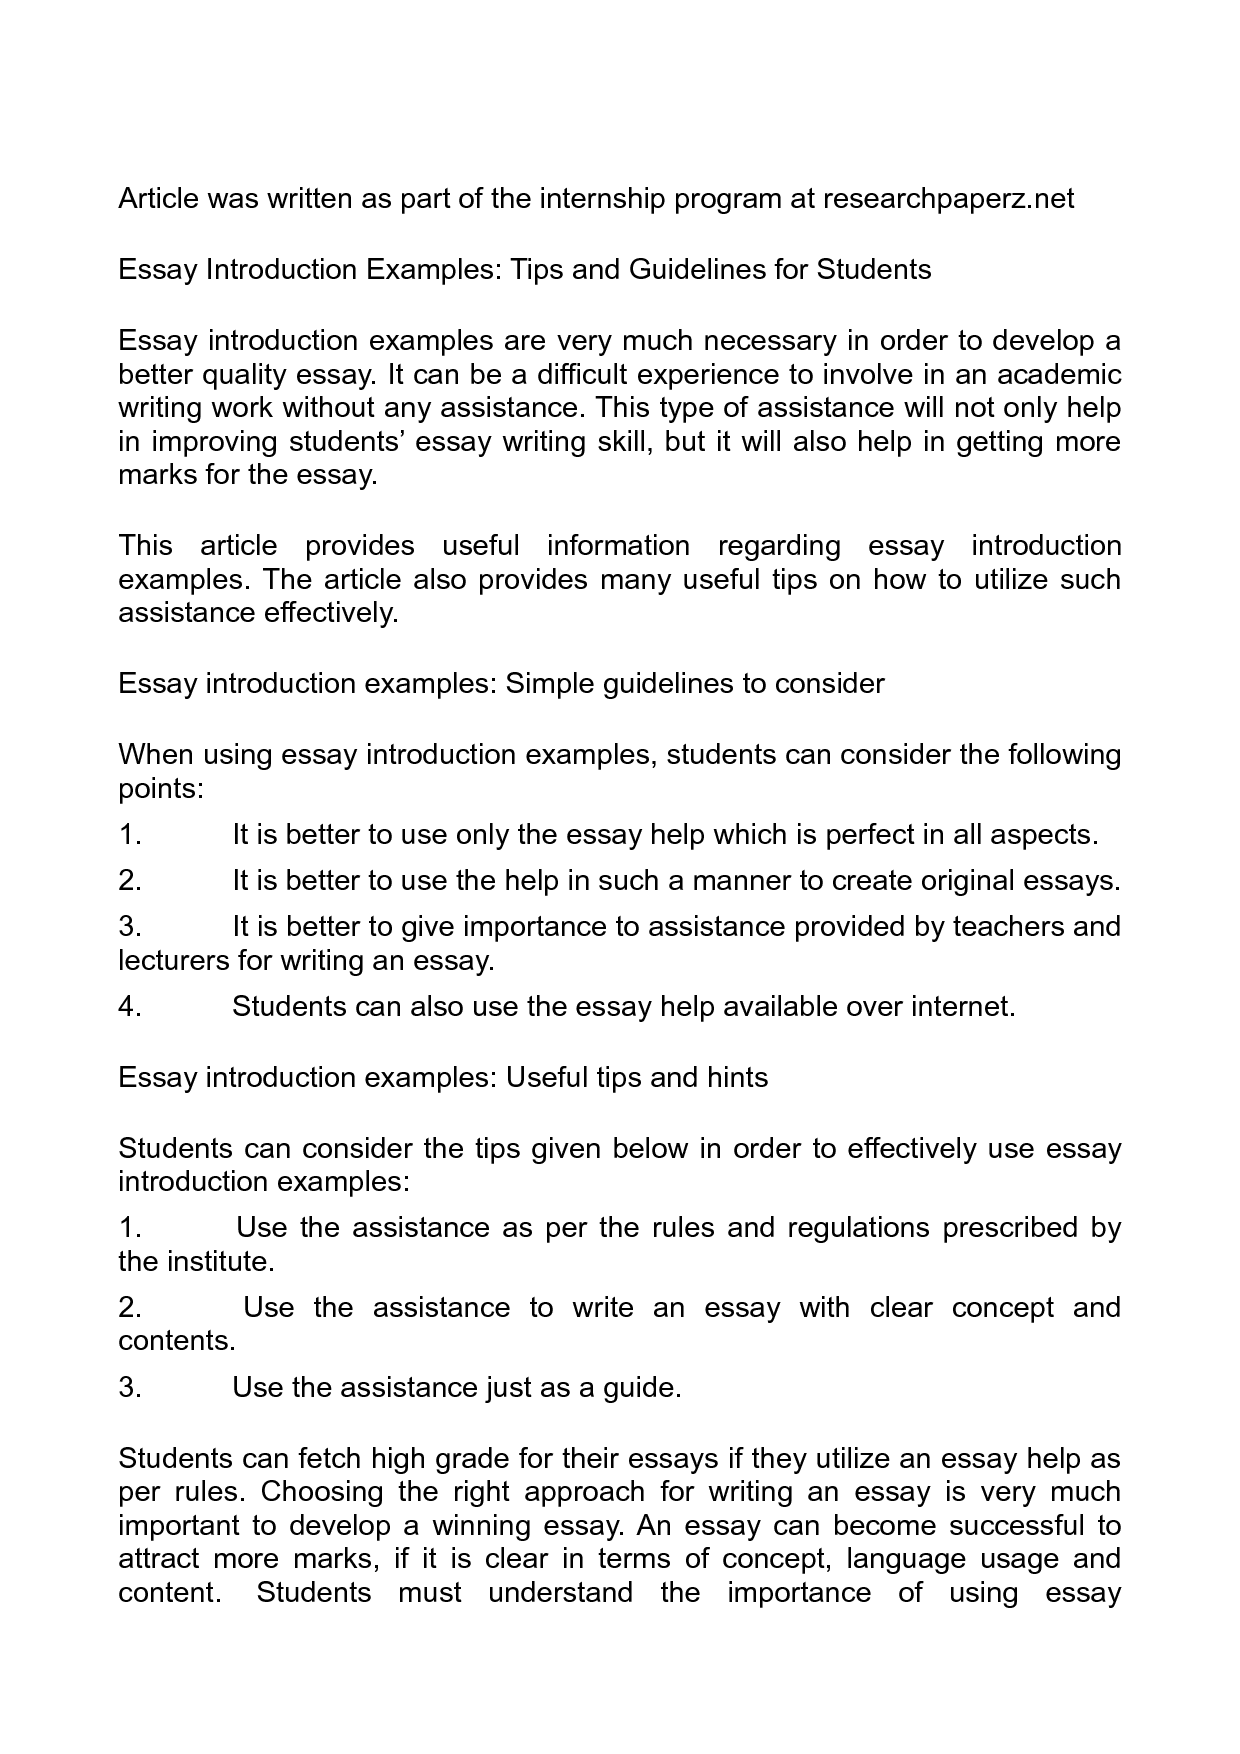 003 Eyx5t6okob Introduction Essays Outstanding Essay Examples University Middle School Writing Compare And Contrast Full